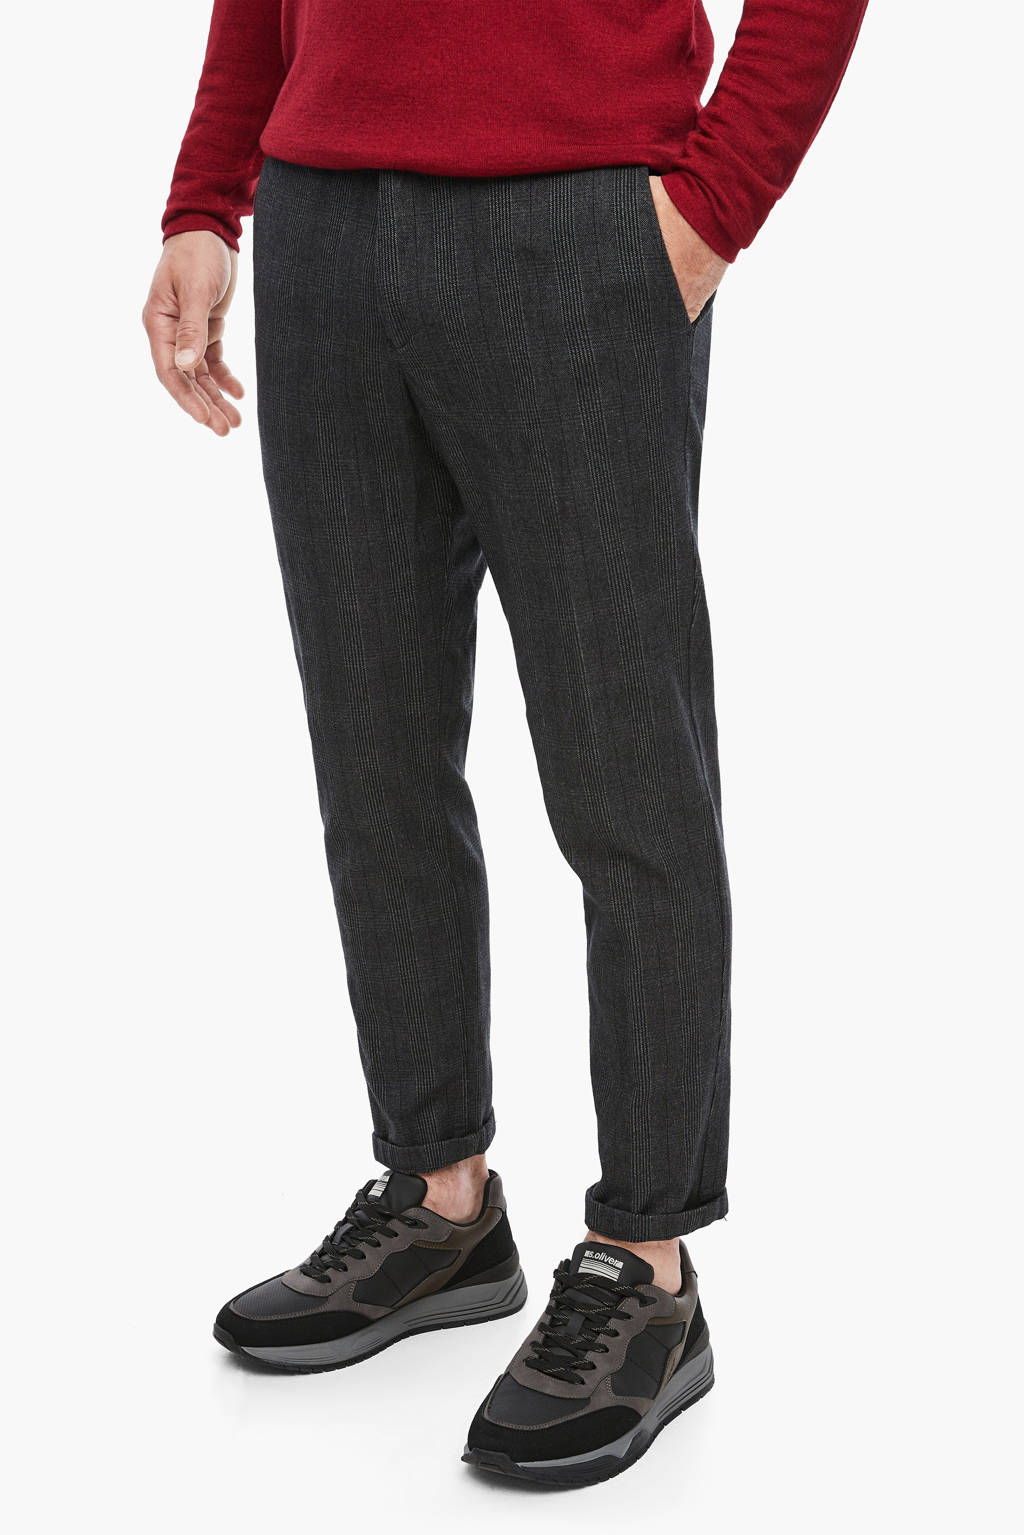 s.Oliver BLACK LABEL geruite slim fit pantalon grijs, Grijs